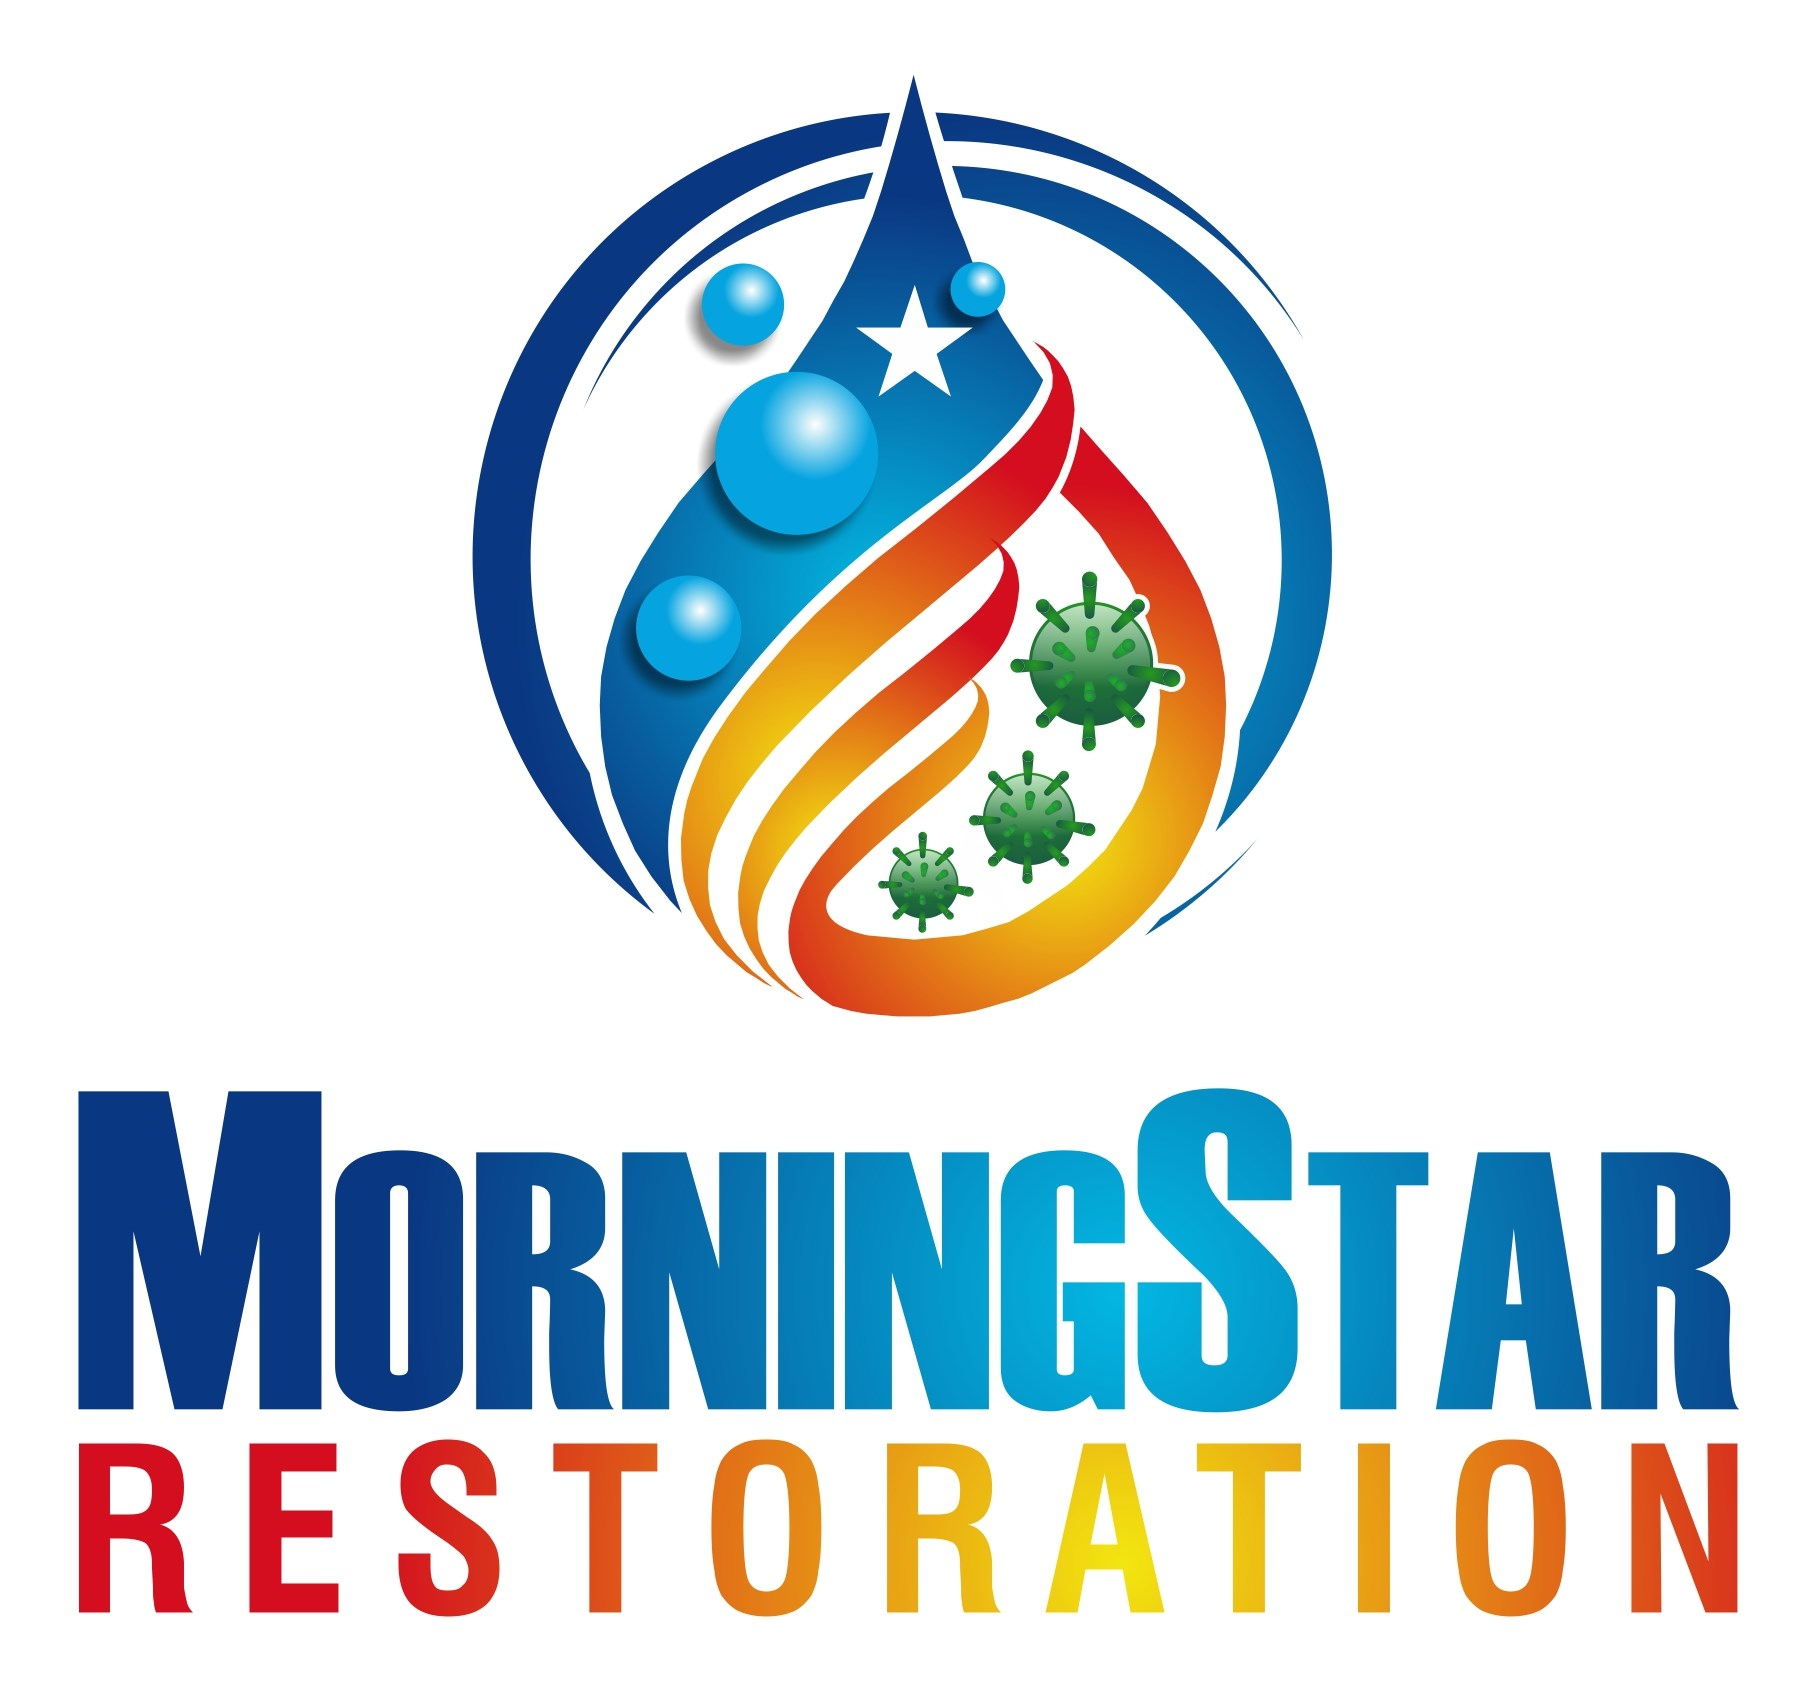 Morningstar Restoration Inc. logo